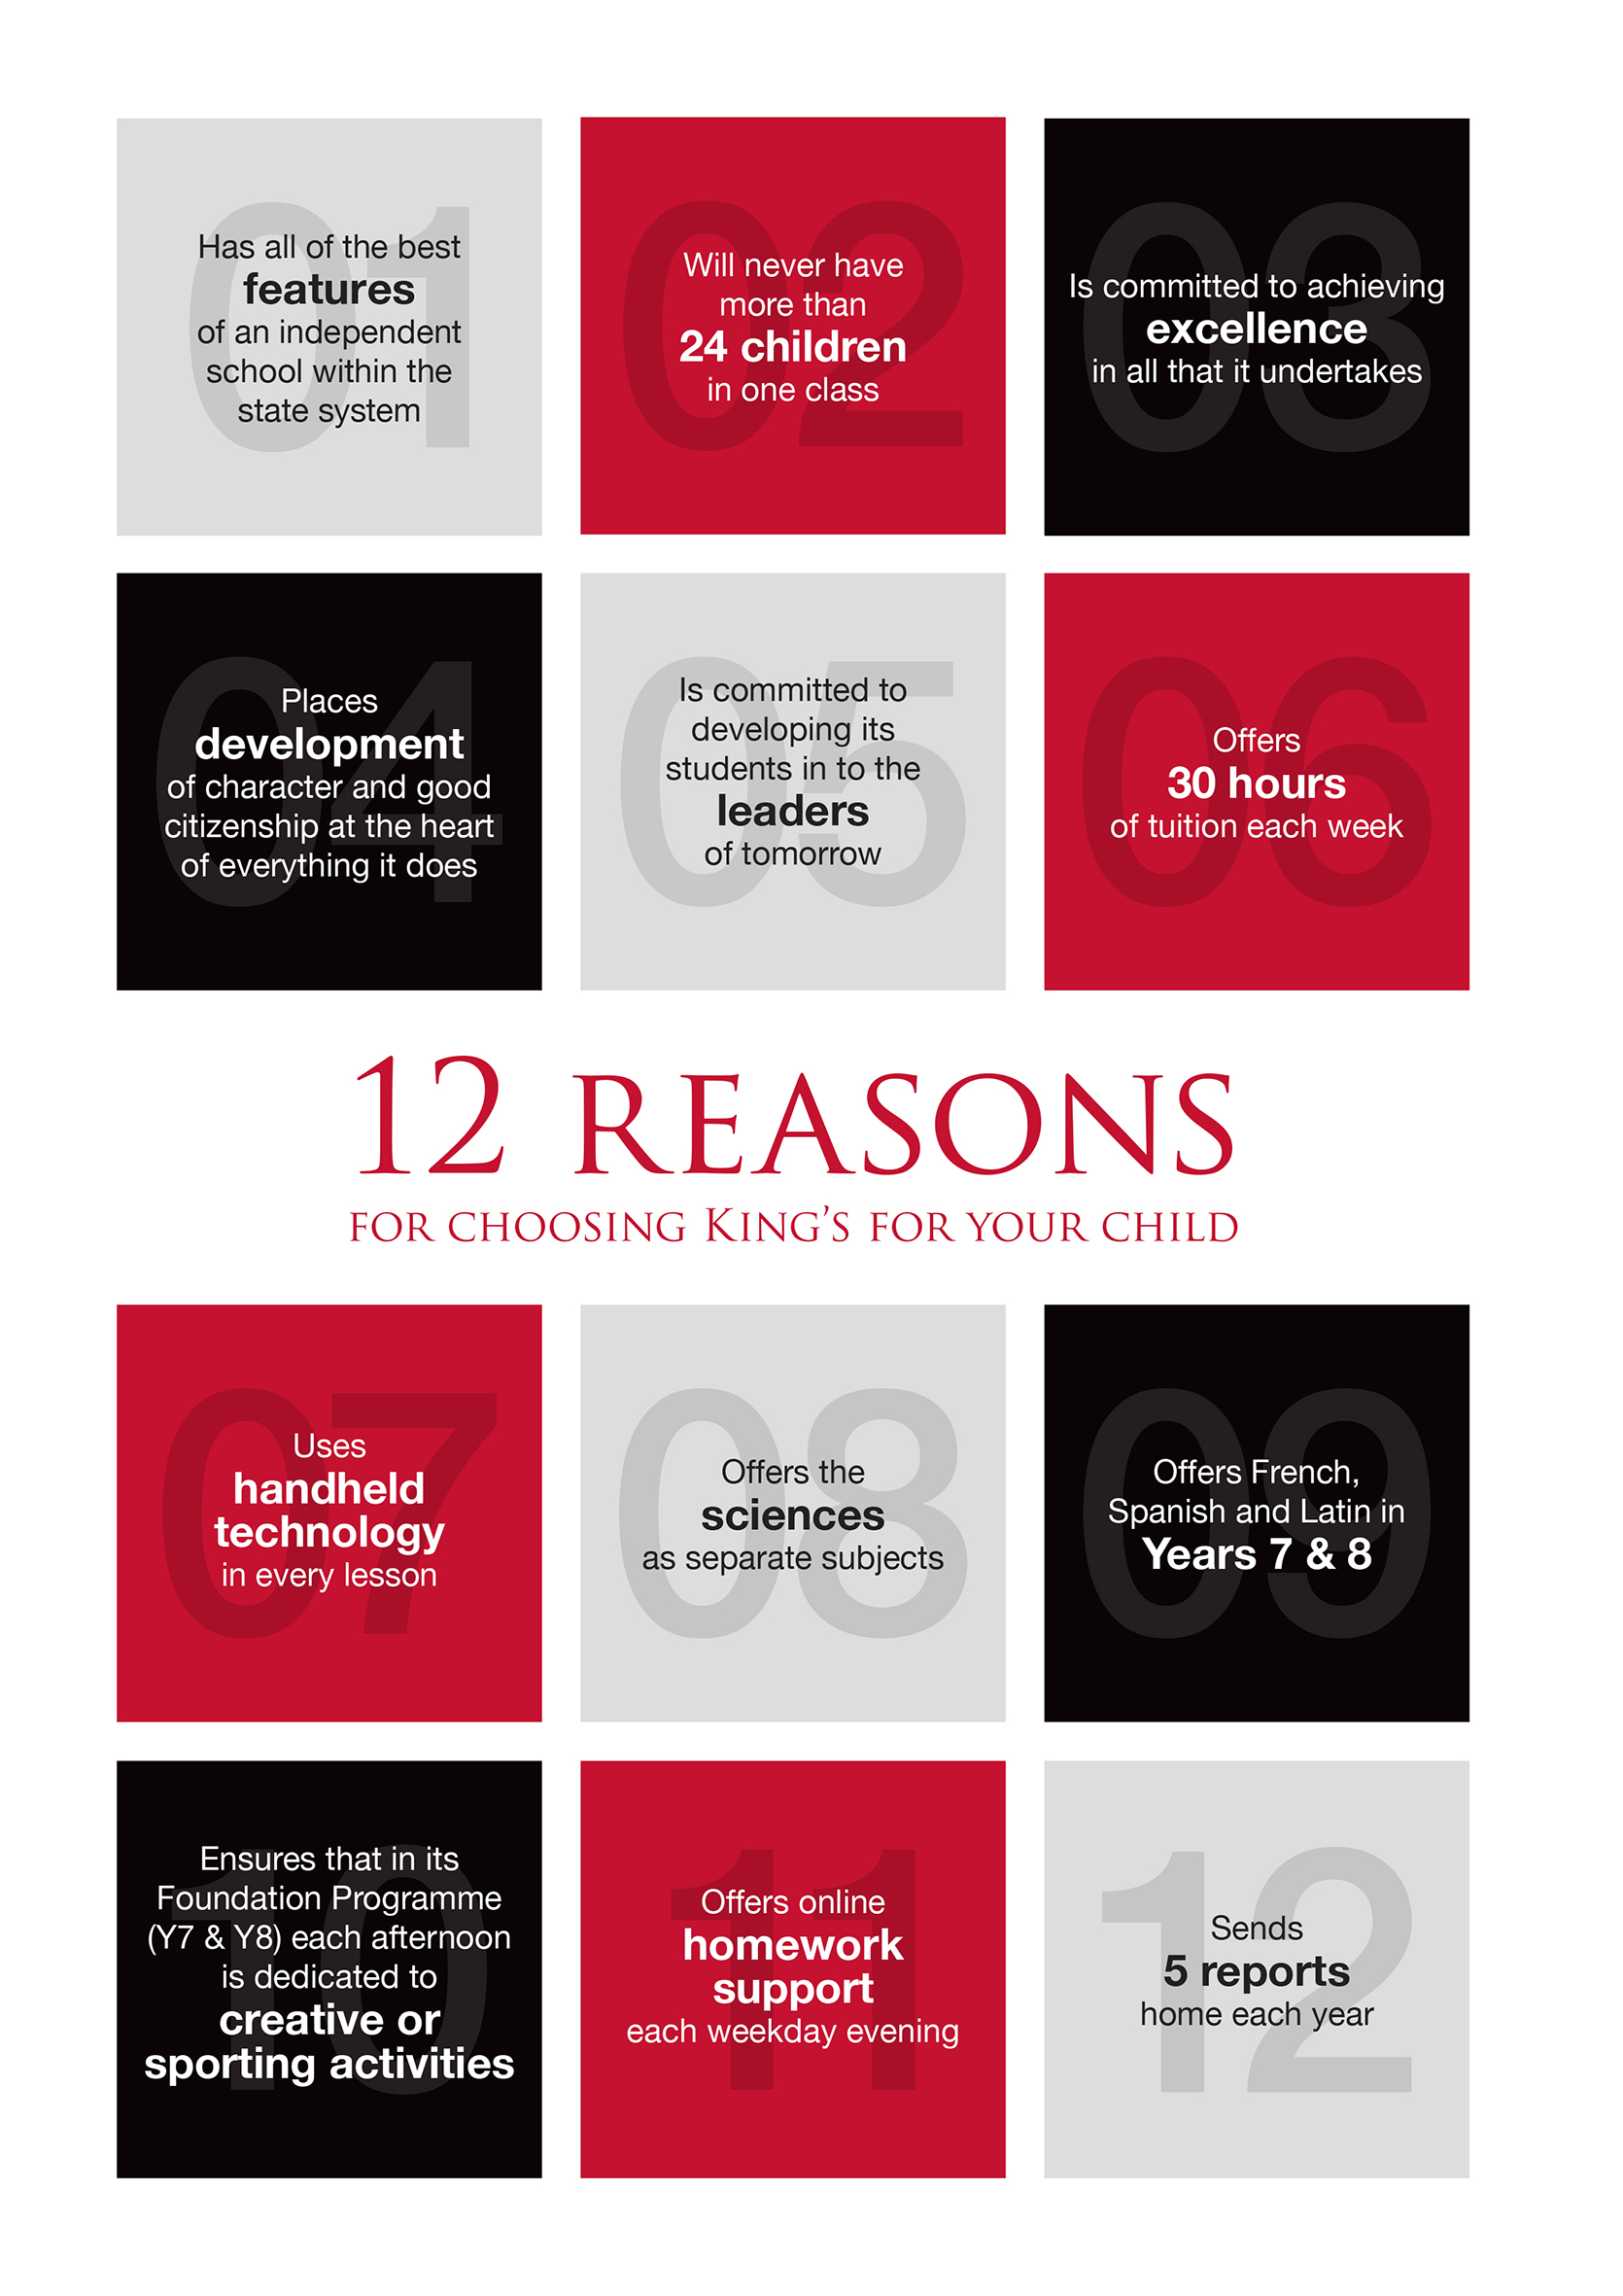 Kings 12 Reasons